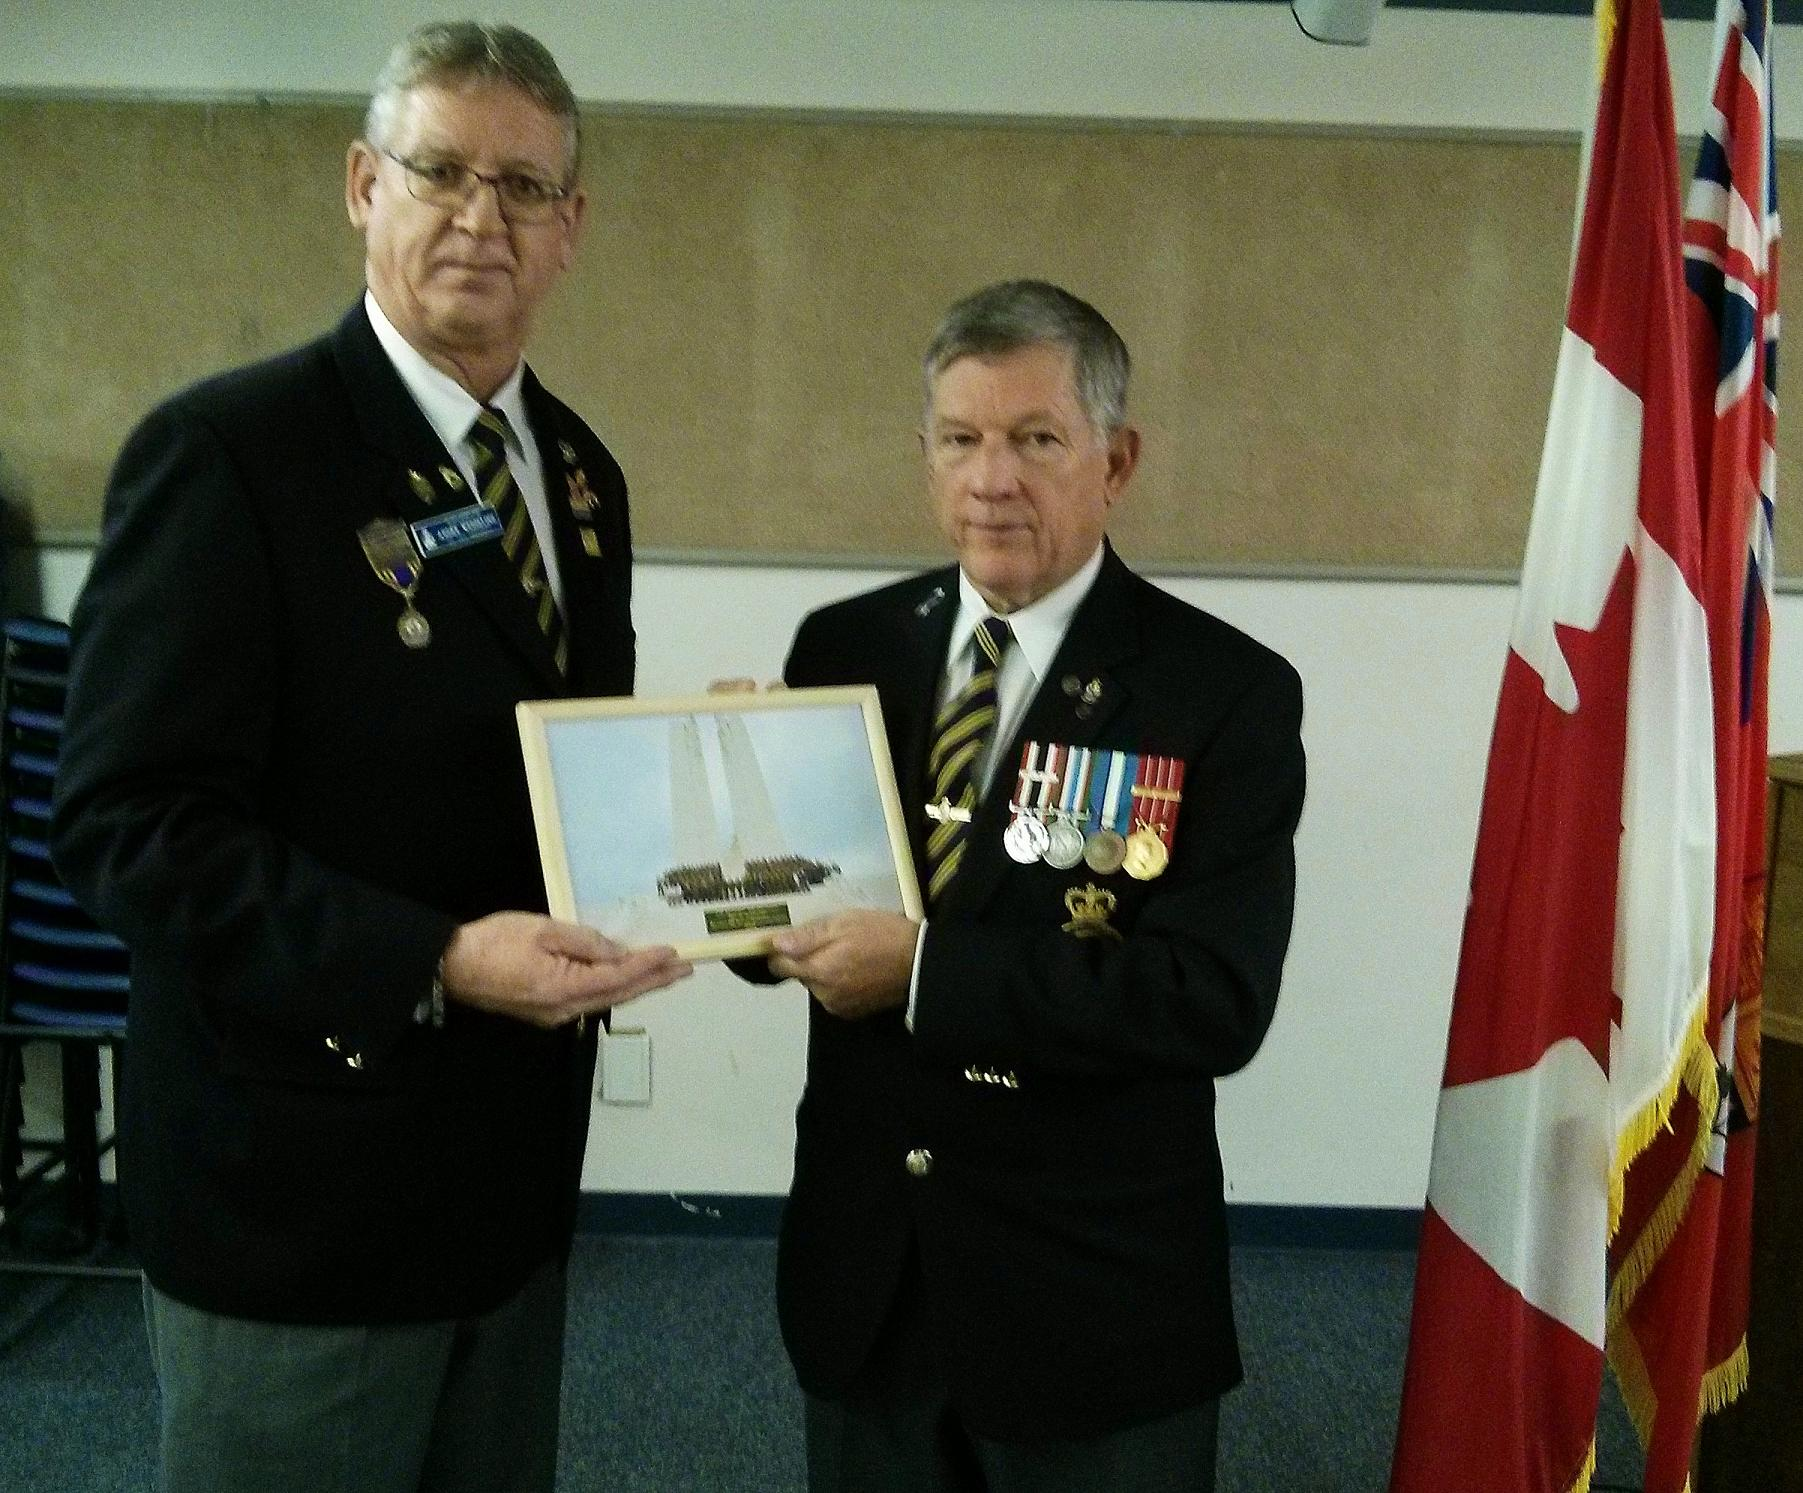 Branch 88 1st Vice President Andre Wesseling presents a photo to President Mike Ward at the October General Meeting. The photo of the Nijmegen March Canadian contingent was taken at the Vimy Memorial in France where Comrade Wesseling laid a wreath representing the Royal Canadian Legion. Andre was one of two Legion members selected from across Canada to participate in the Nijmegen March this year.